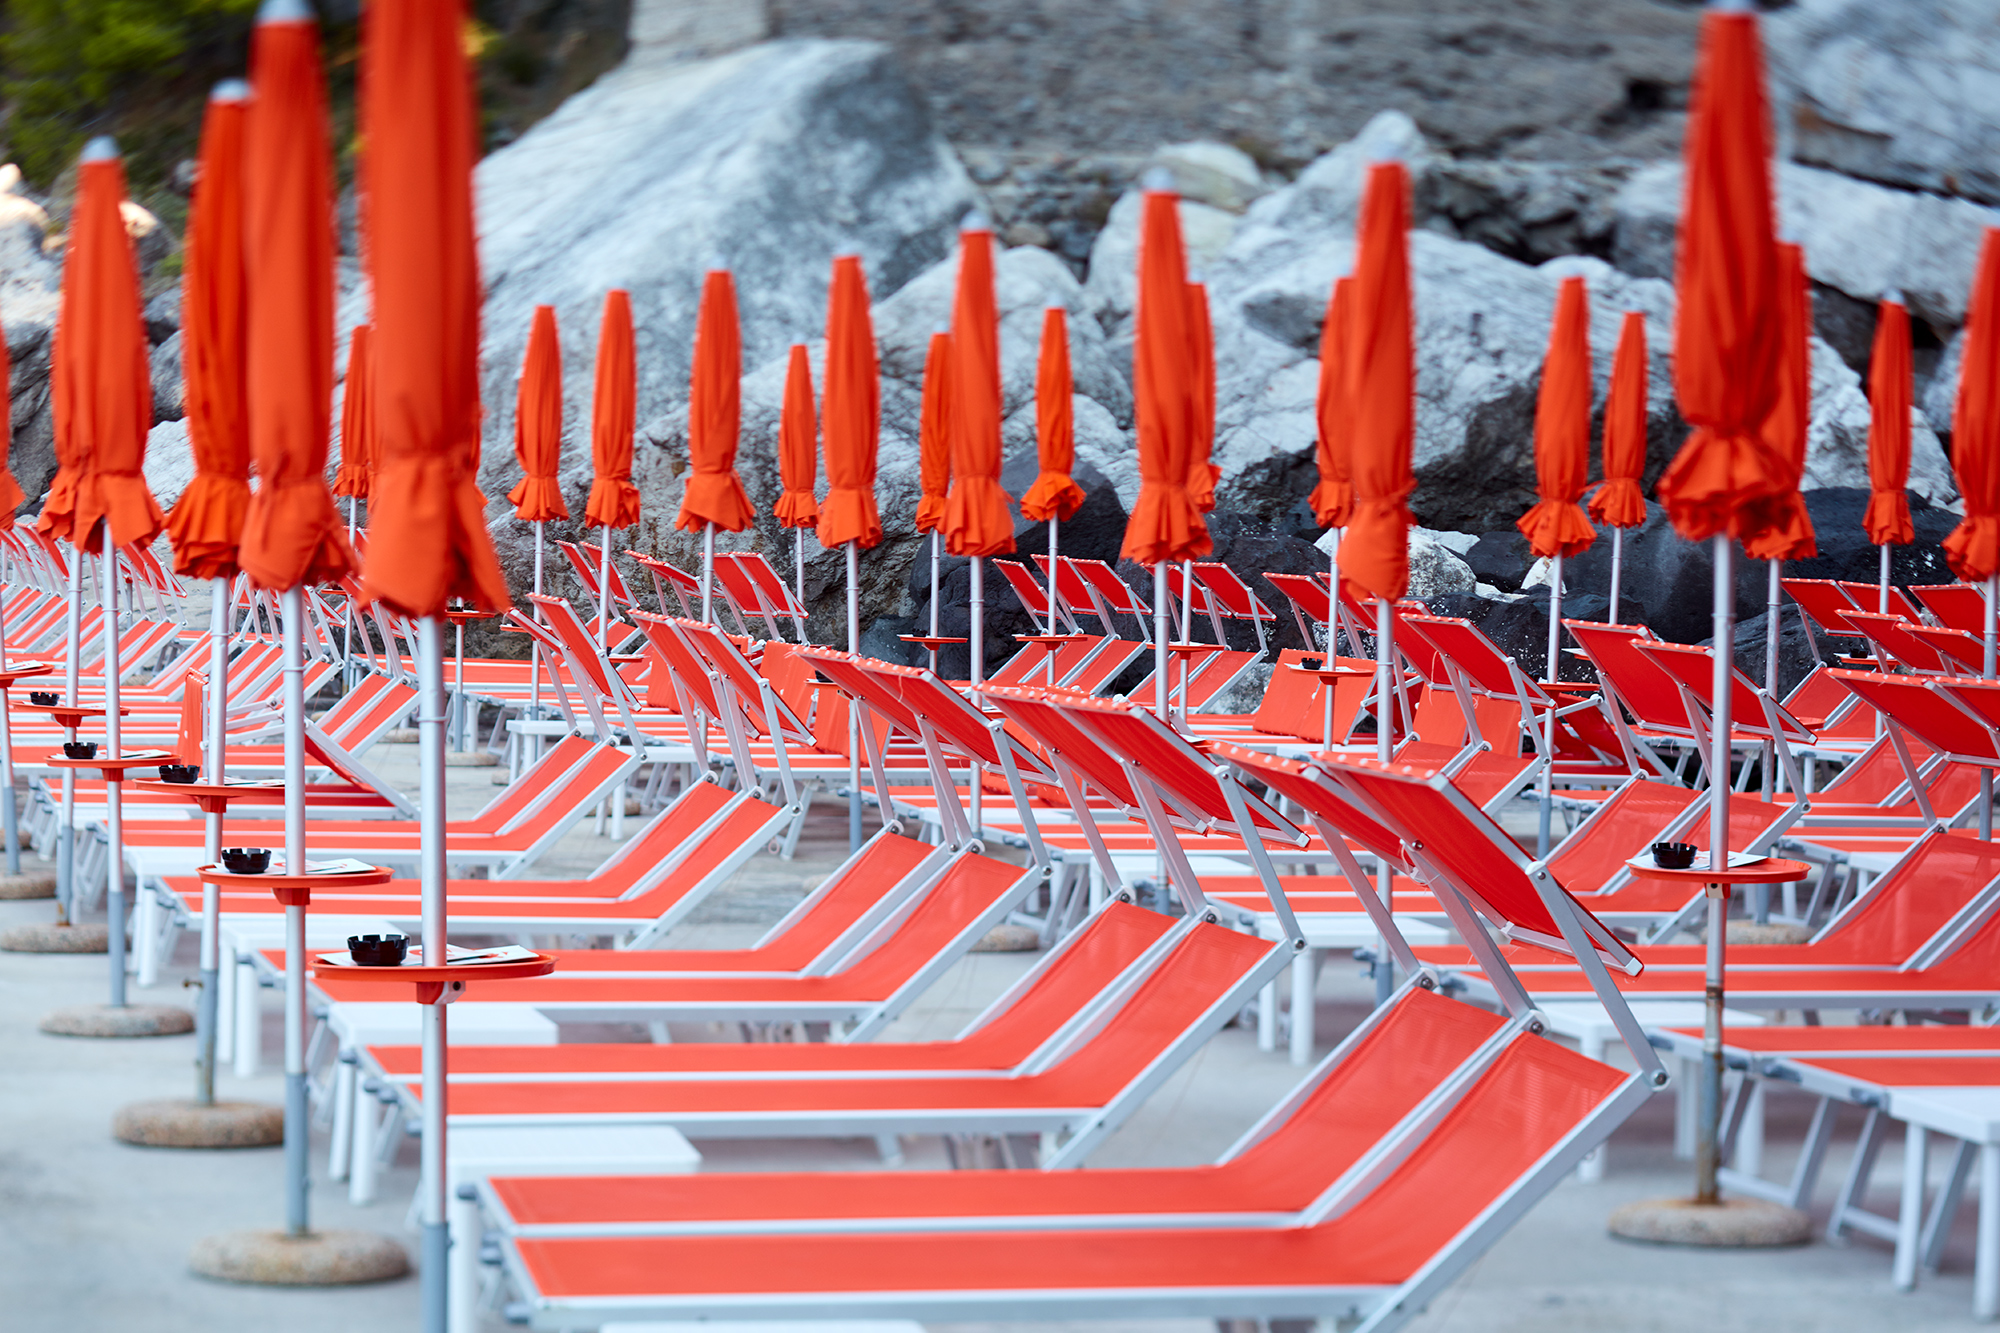 One Fire Italy Praiano s1a2572